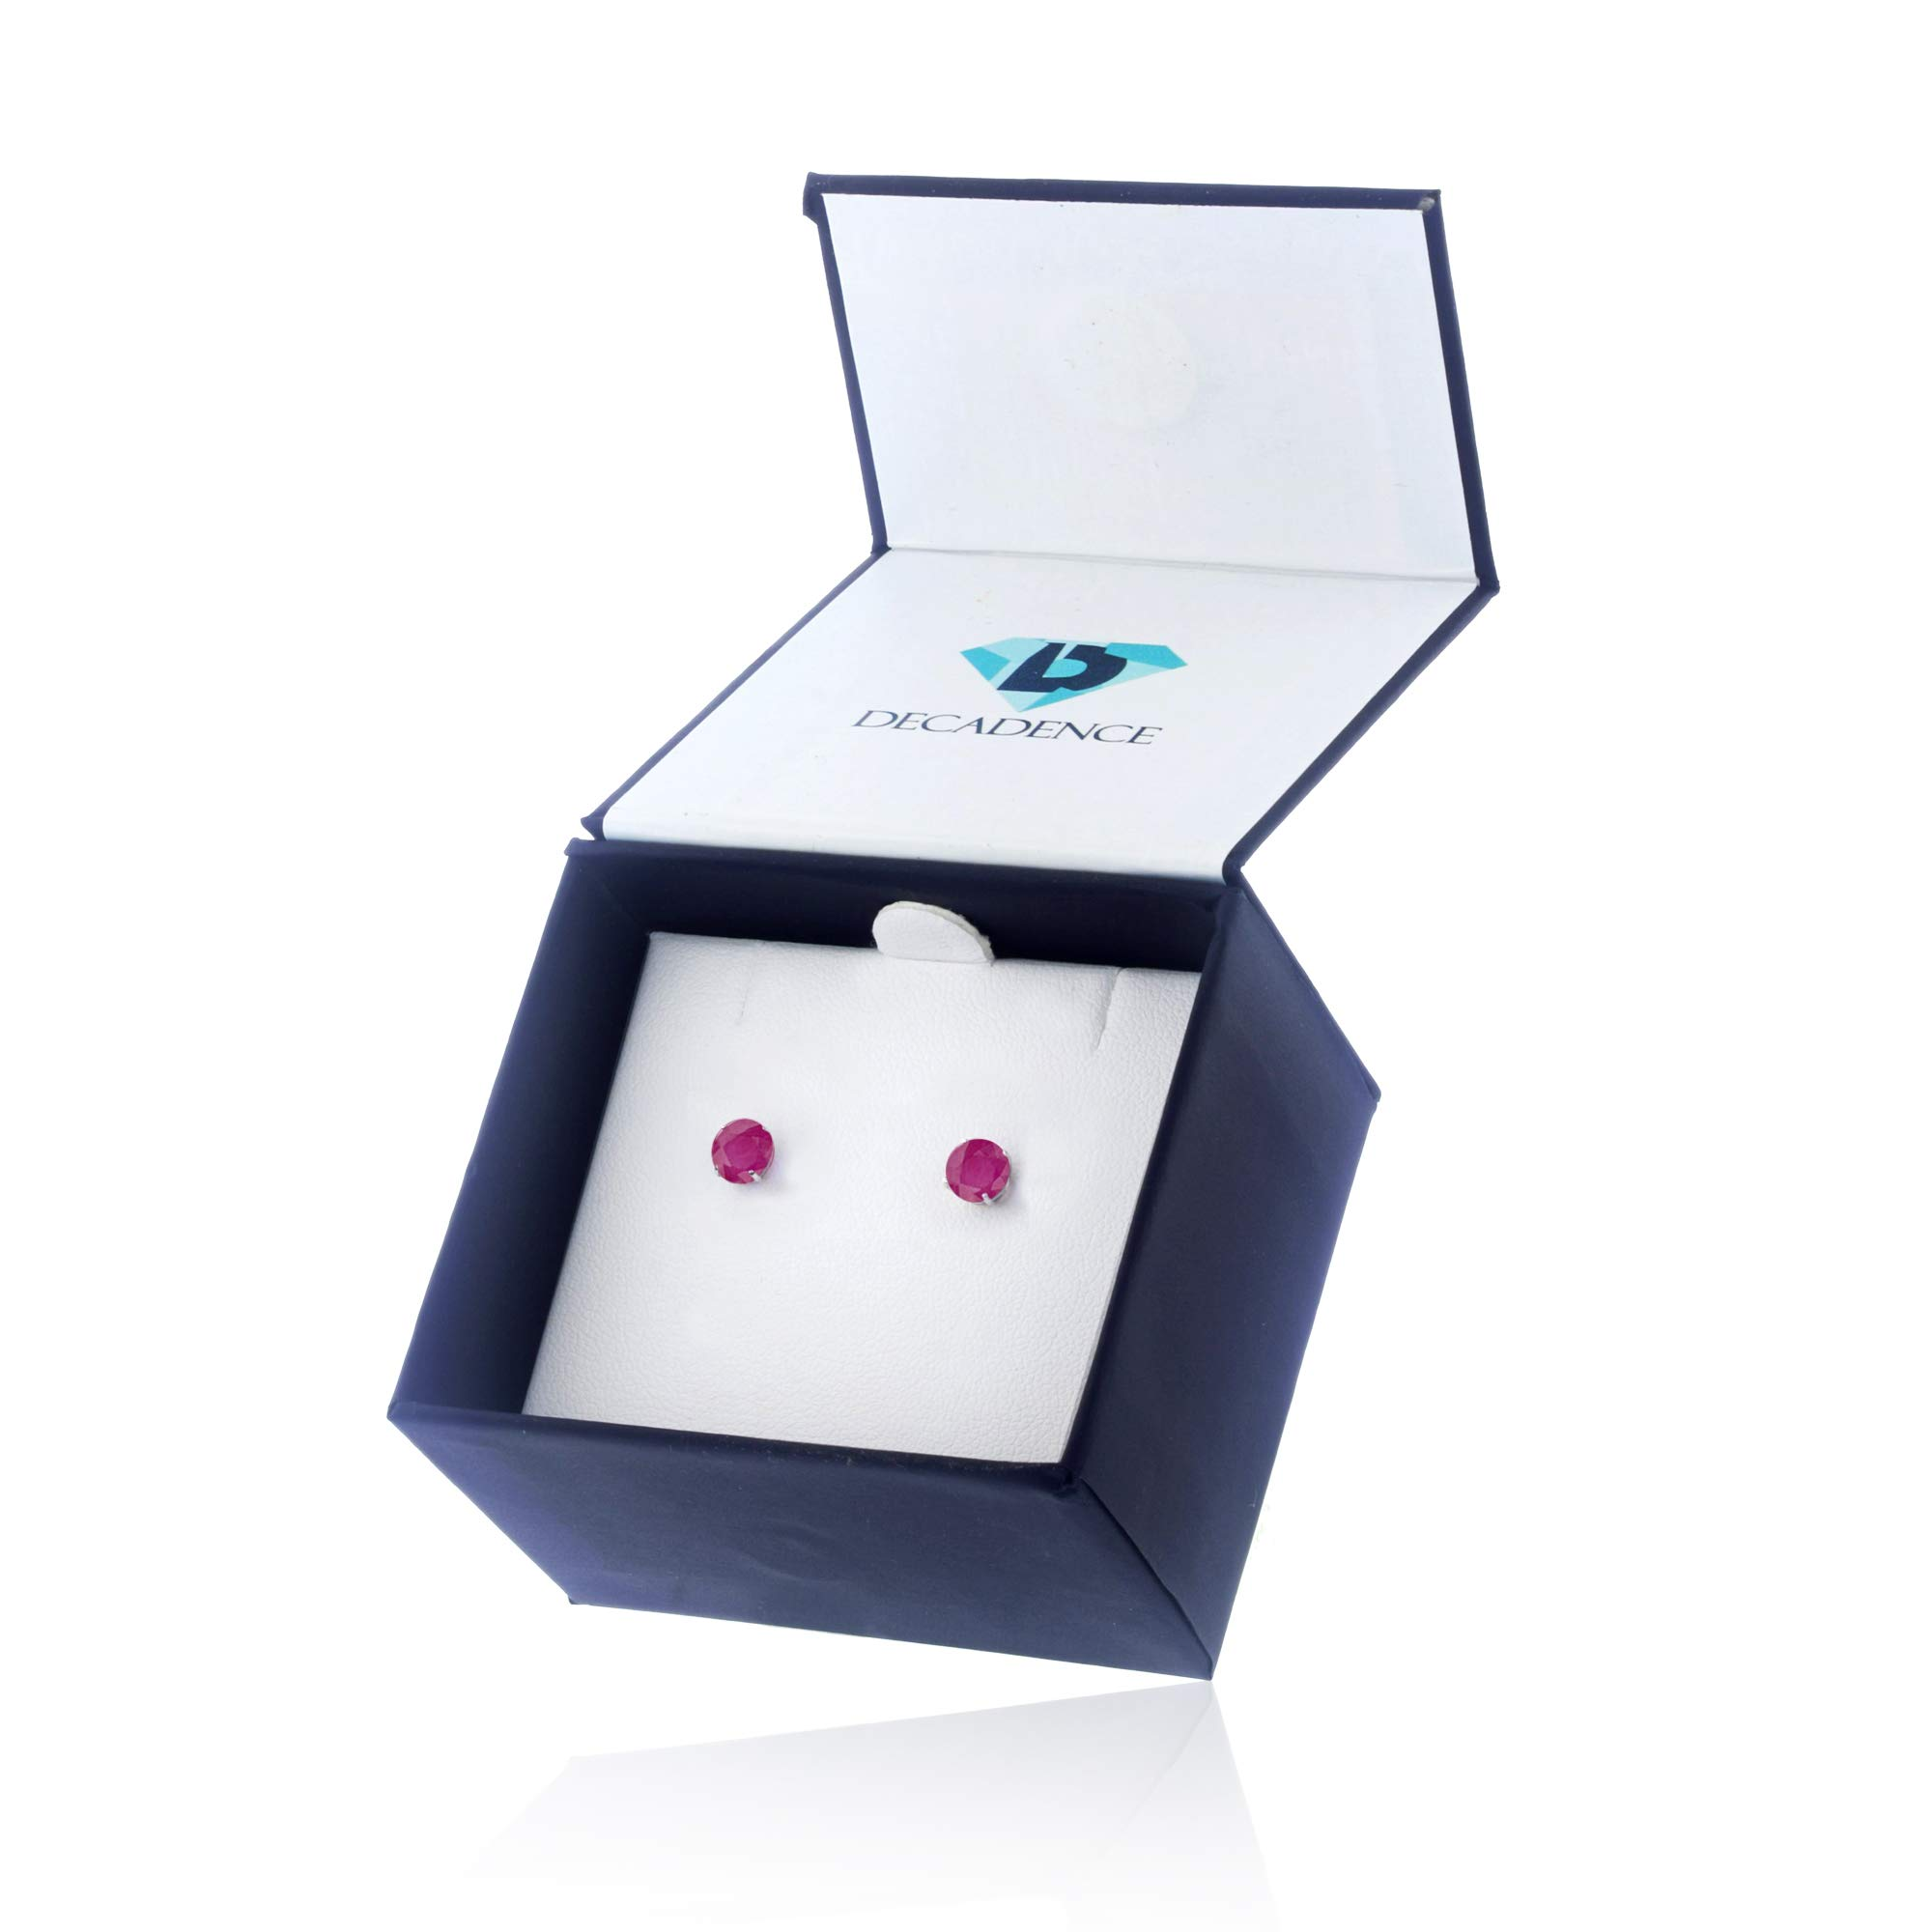 Genuine 14K Solid White Gold 4mm Round Natural Ruby July Birthstone Stud Earrings by Decadence (Image #6)